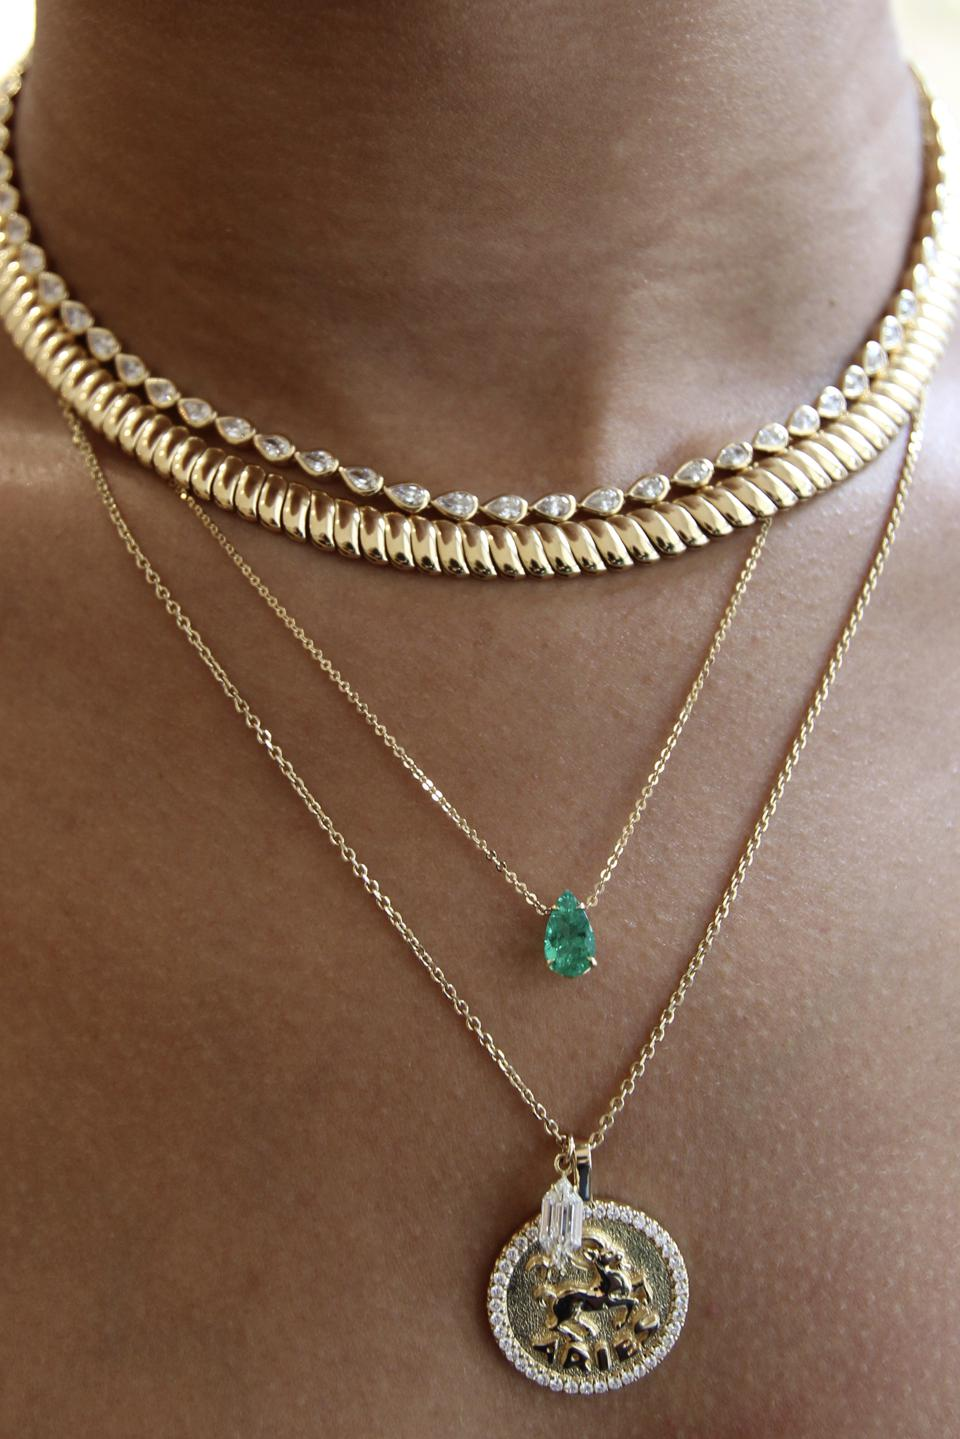 A bare chest model wearing four various necklaces made from gold, diamonds or emerald.